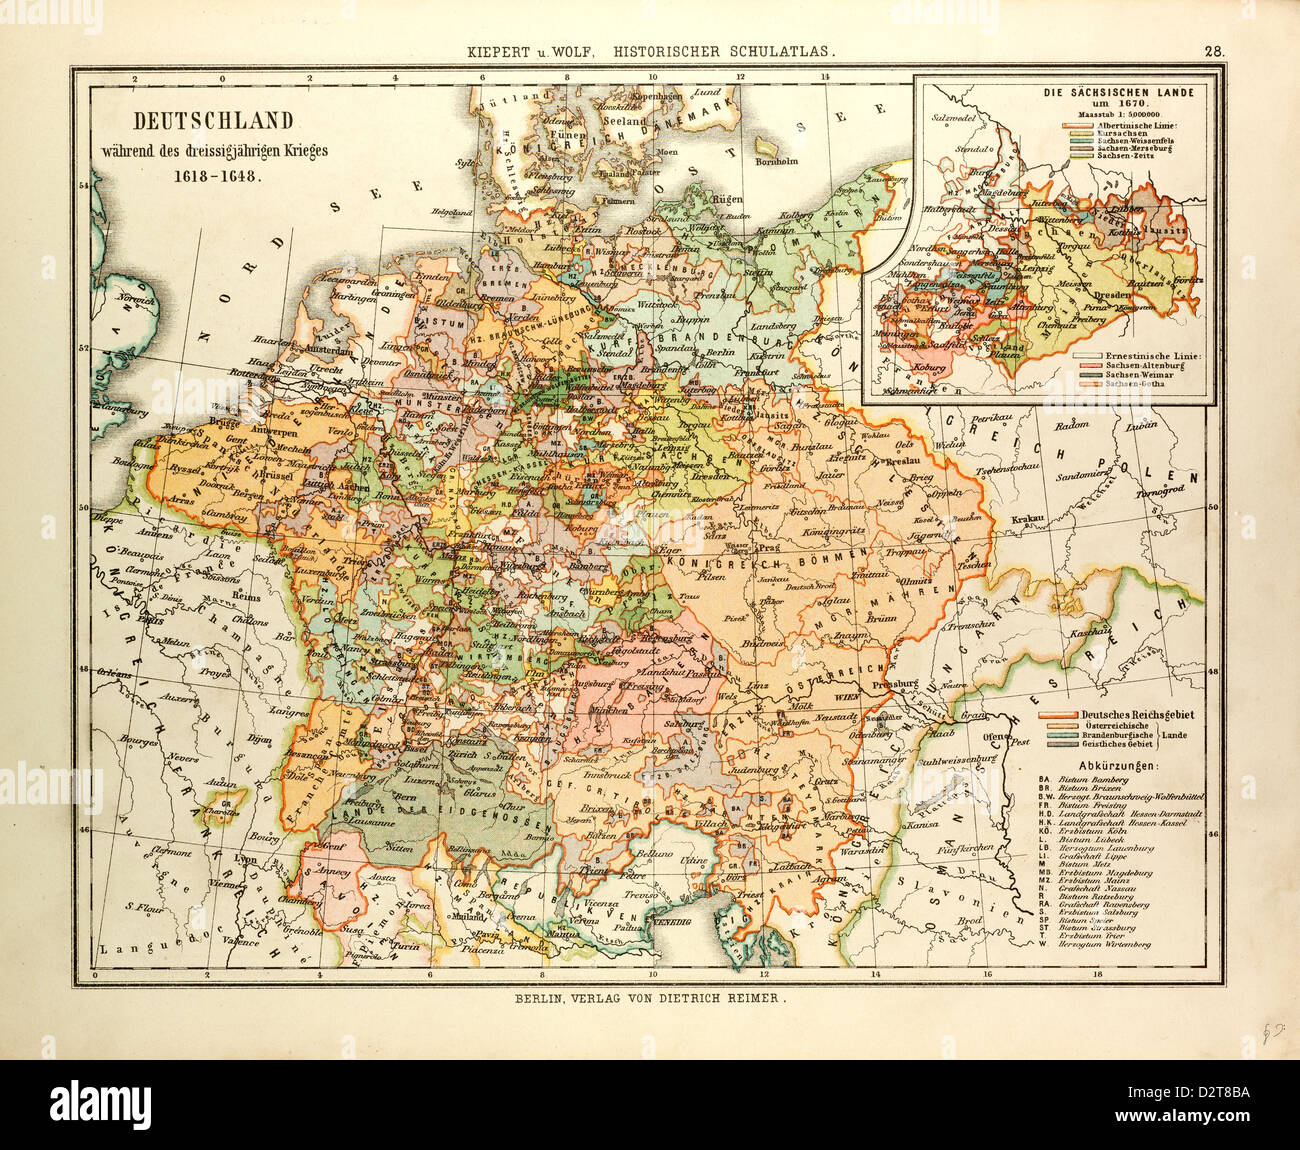 MAP OF GERMANY DURING THE THIRTY YEARS' WAR 1618 - 1648